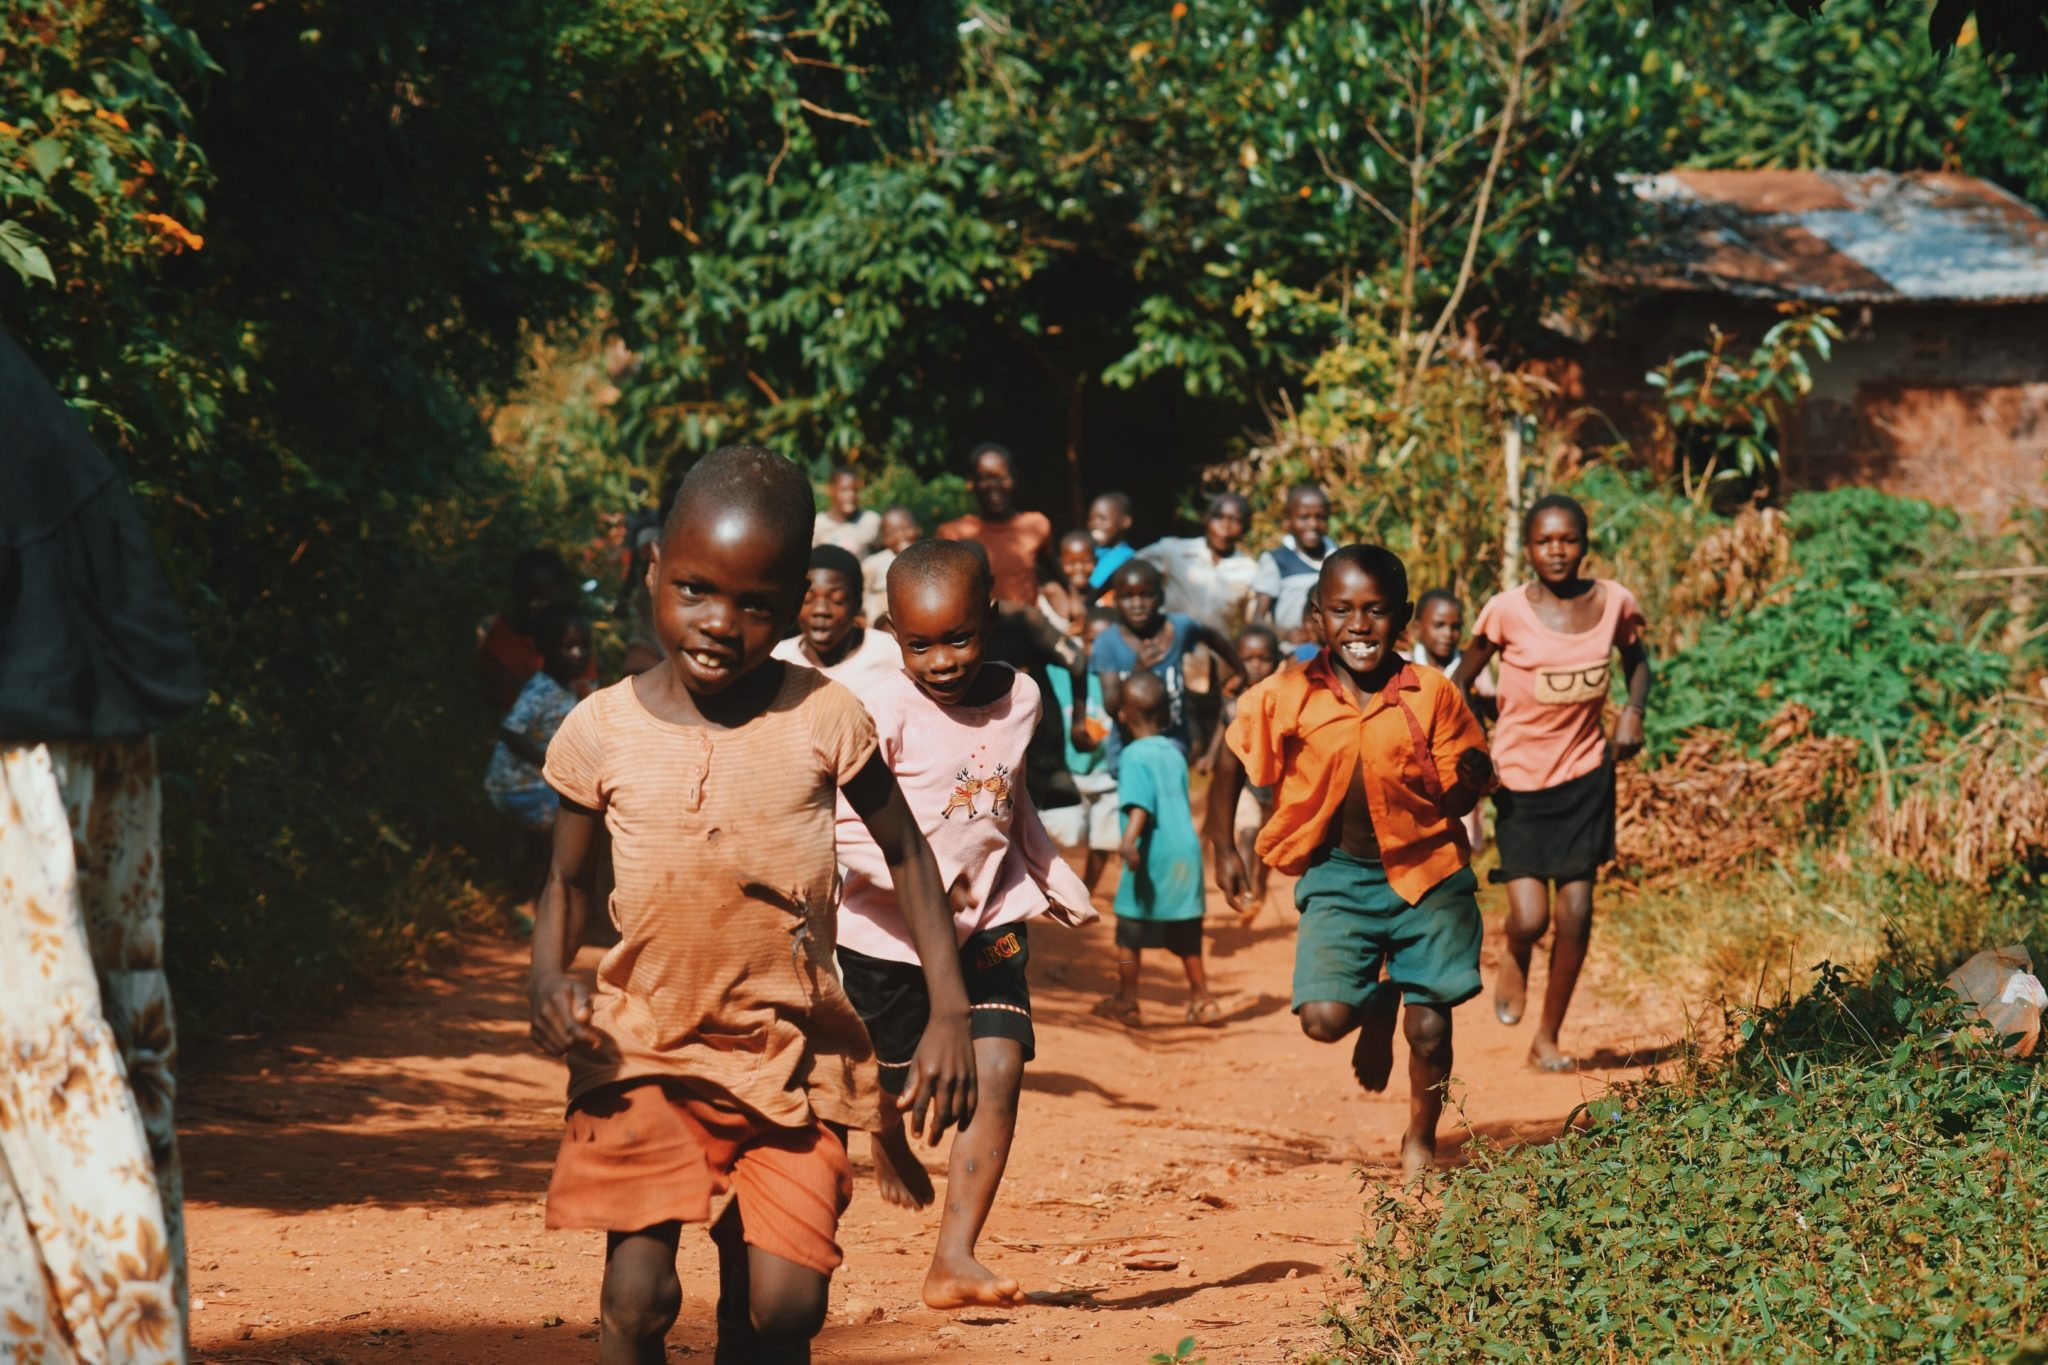 poor kids from africa adra fundation